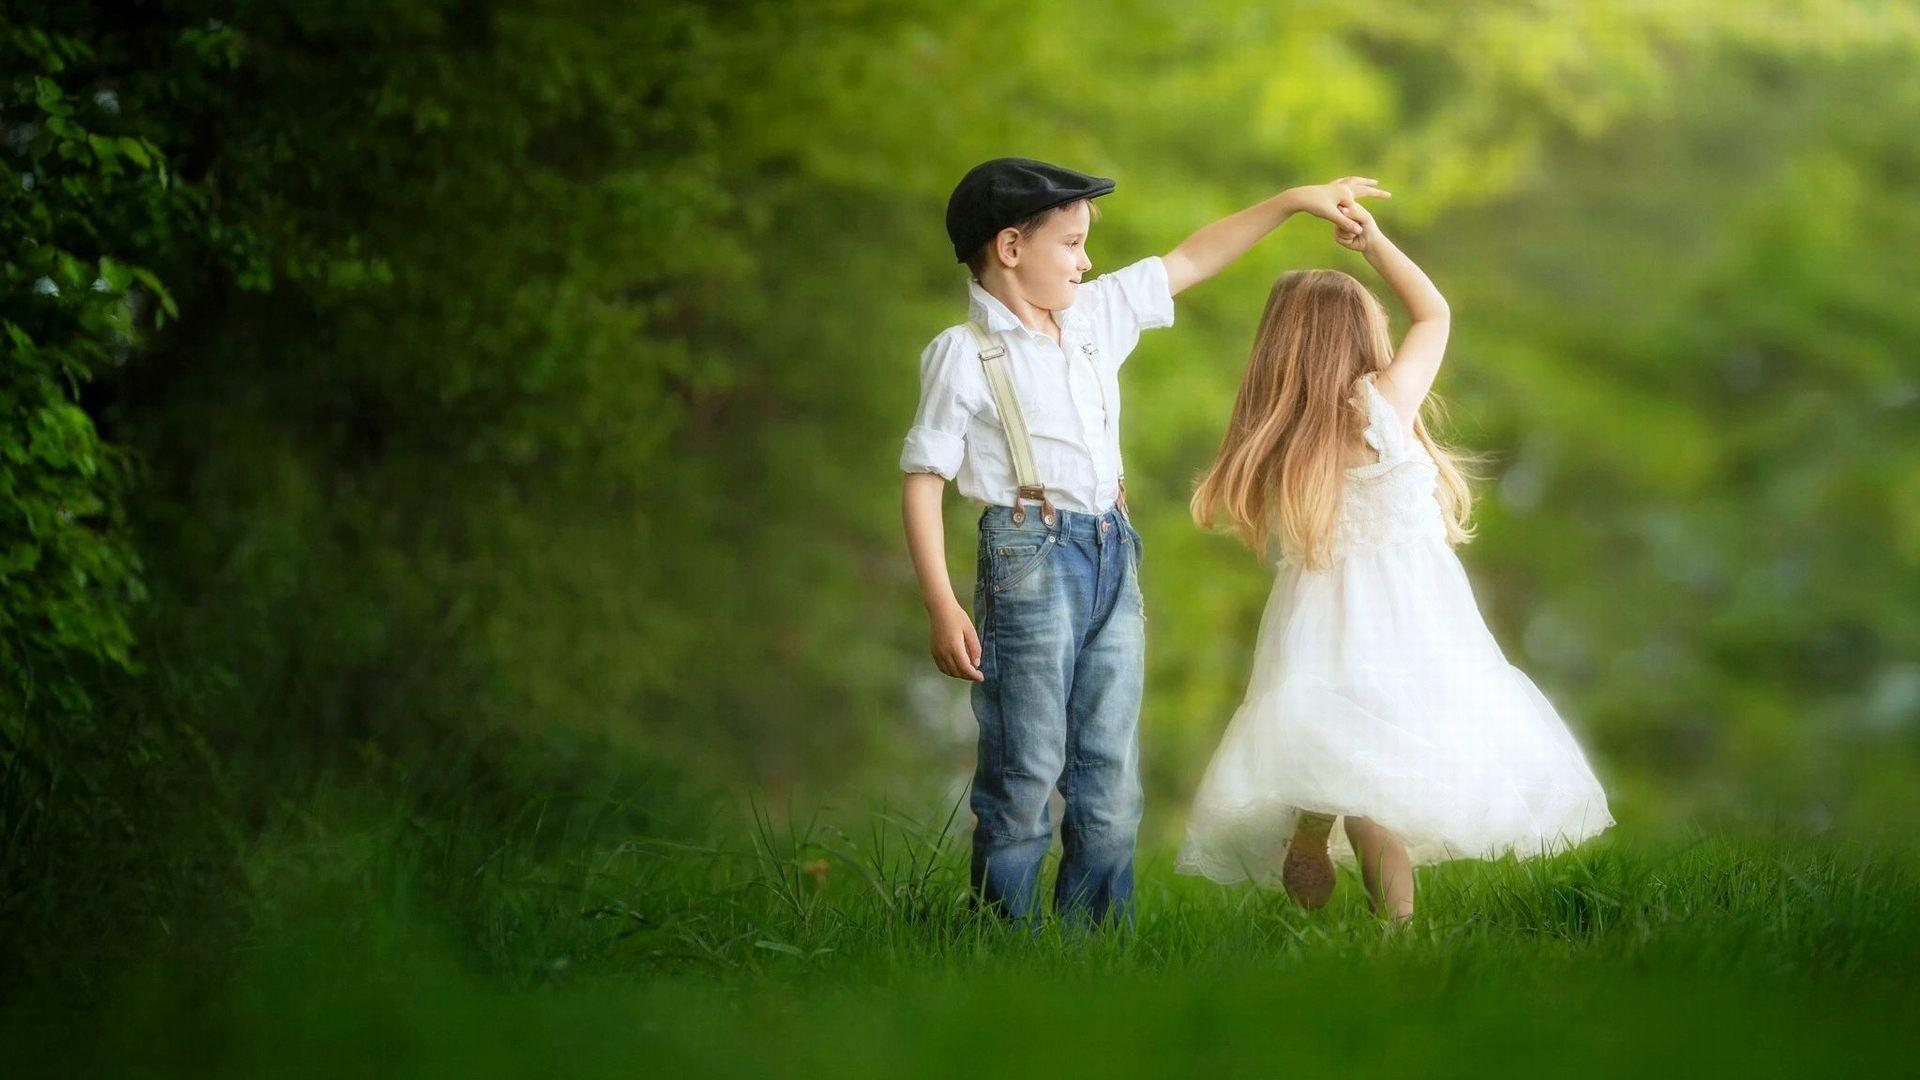 Boy and Girl Wallpapers